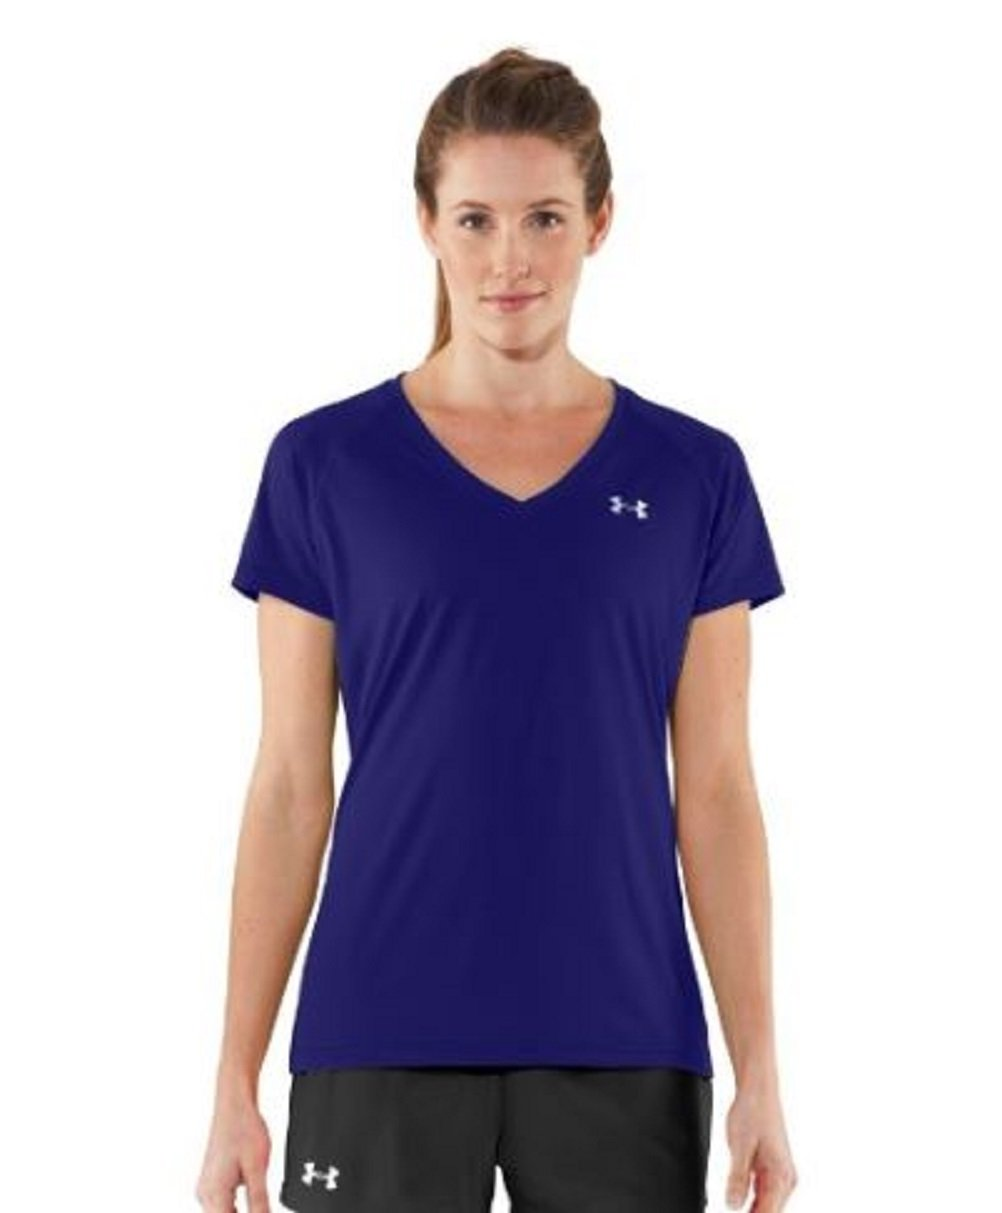 Under Armour Women's Short Sleeve V-Neck Tops (Extra-Small)